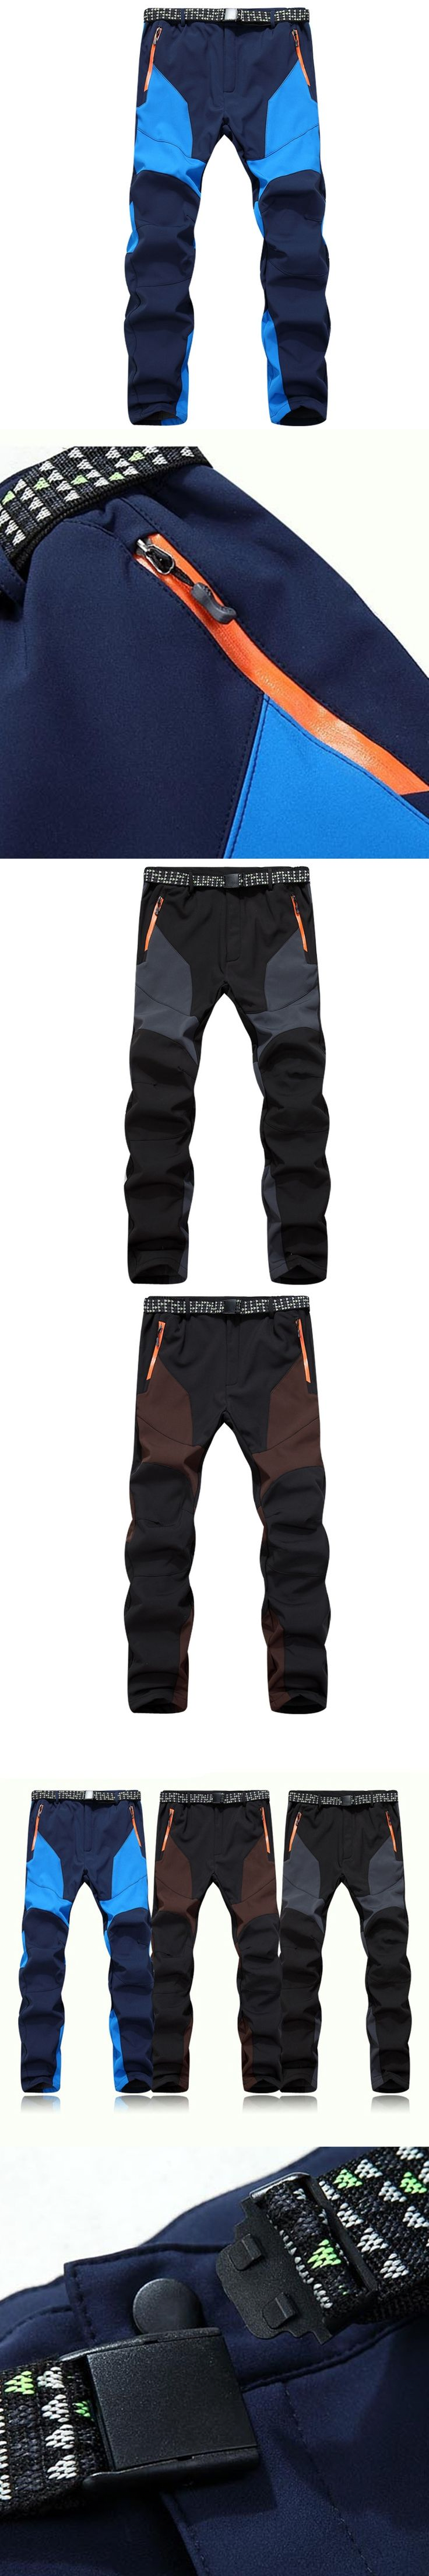 Fleece Pants Winter Warm Pants Windproof Tactical Soft Shell Combat Elastic Jogger Trousers Breathable Thermal Cargo Pants